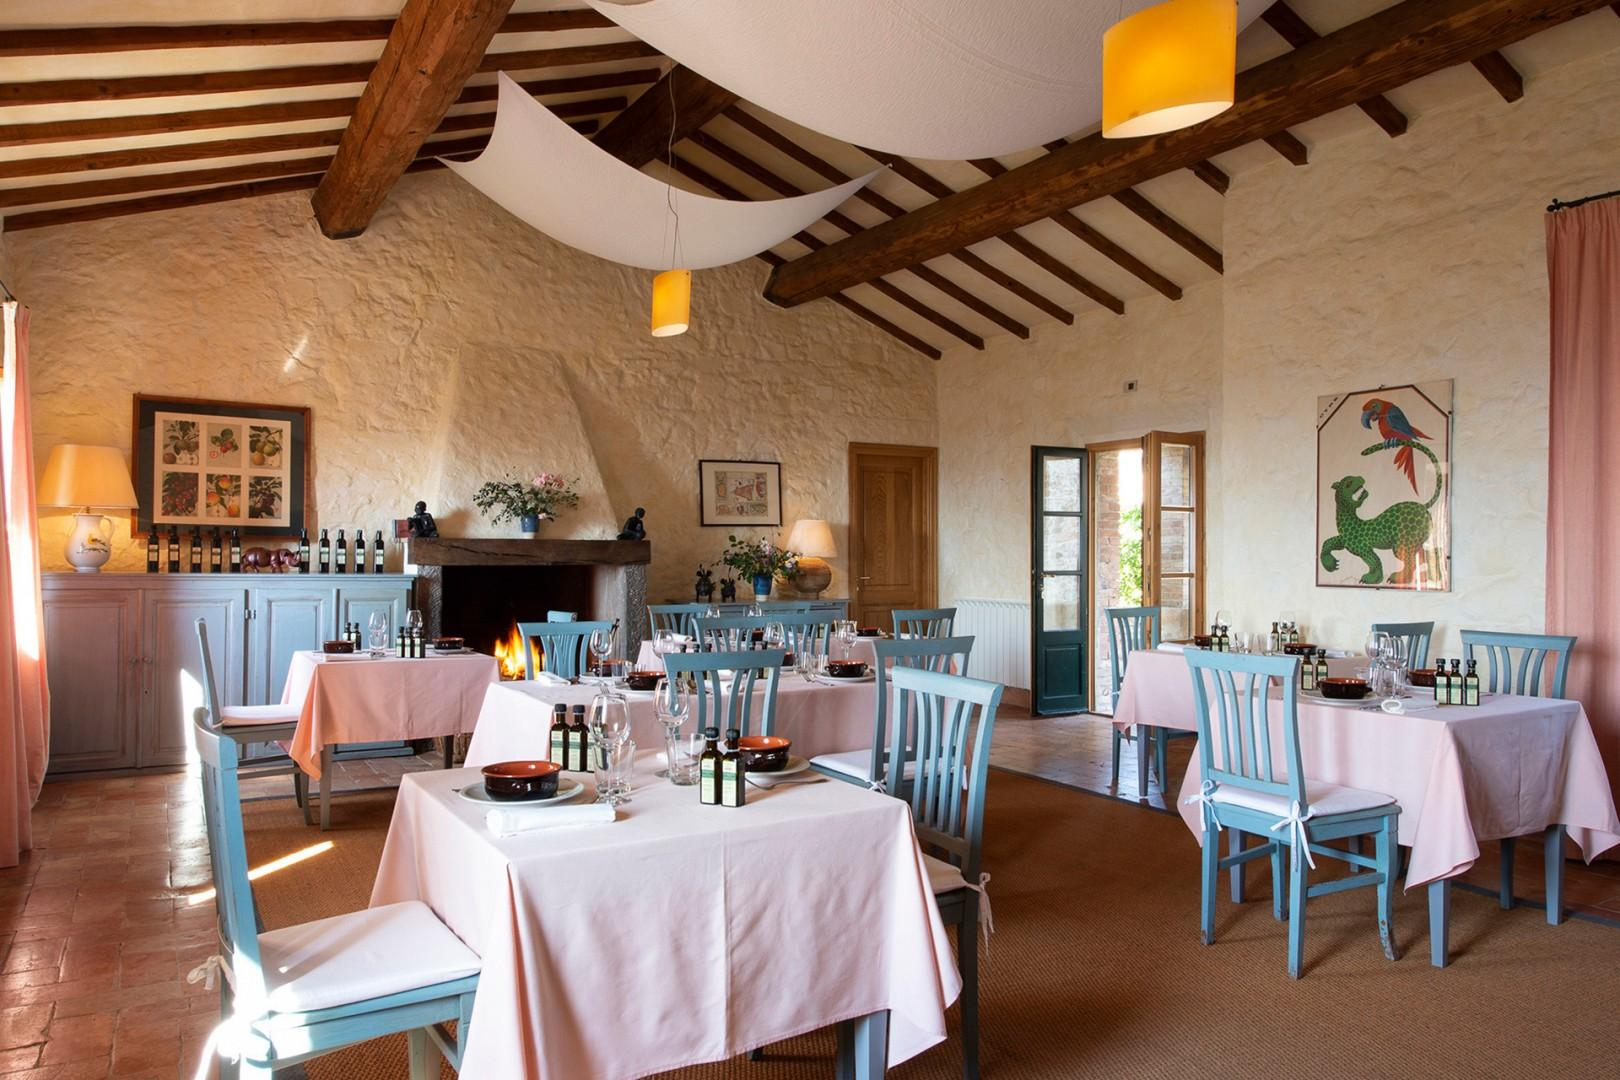 Estate dining room. A nice way to meet your neighbors and to enjoy authentic Tuscan cooking.